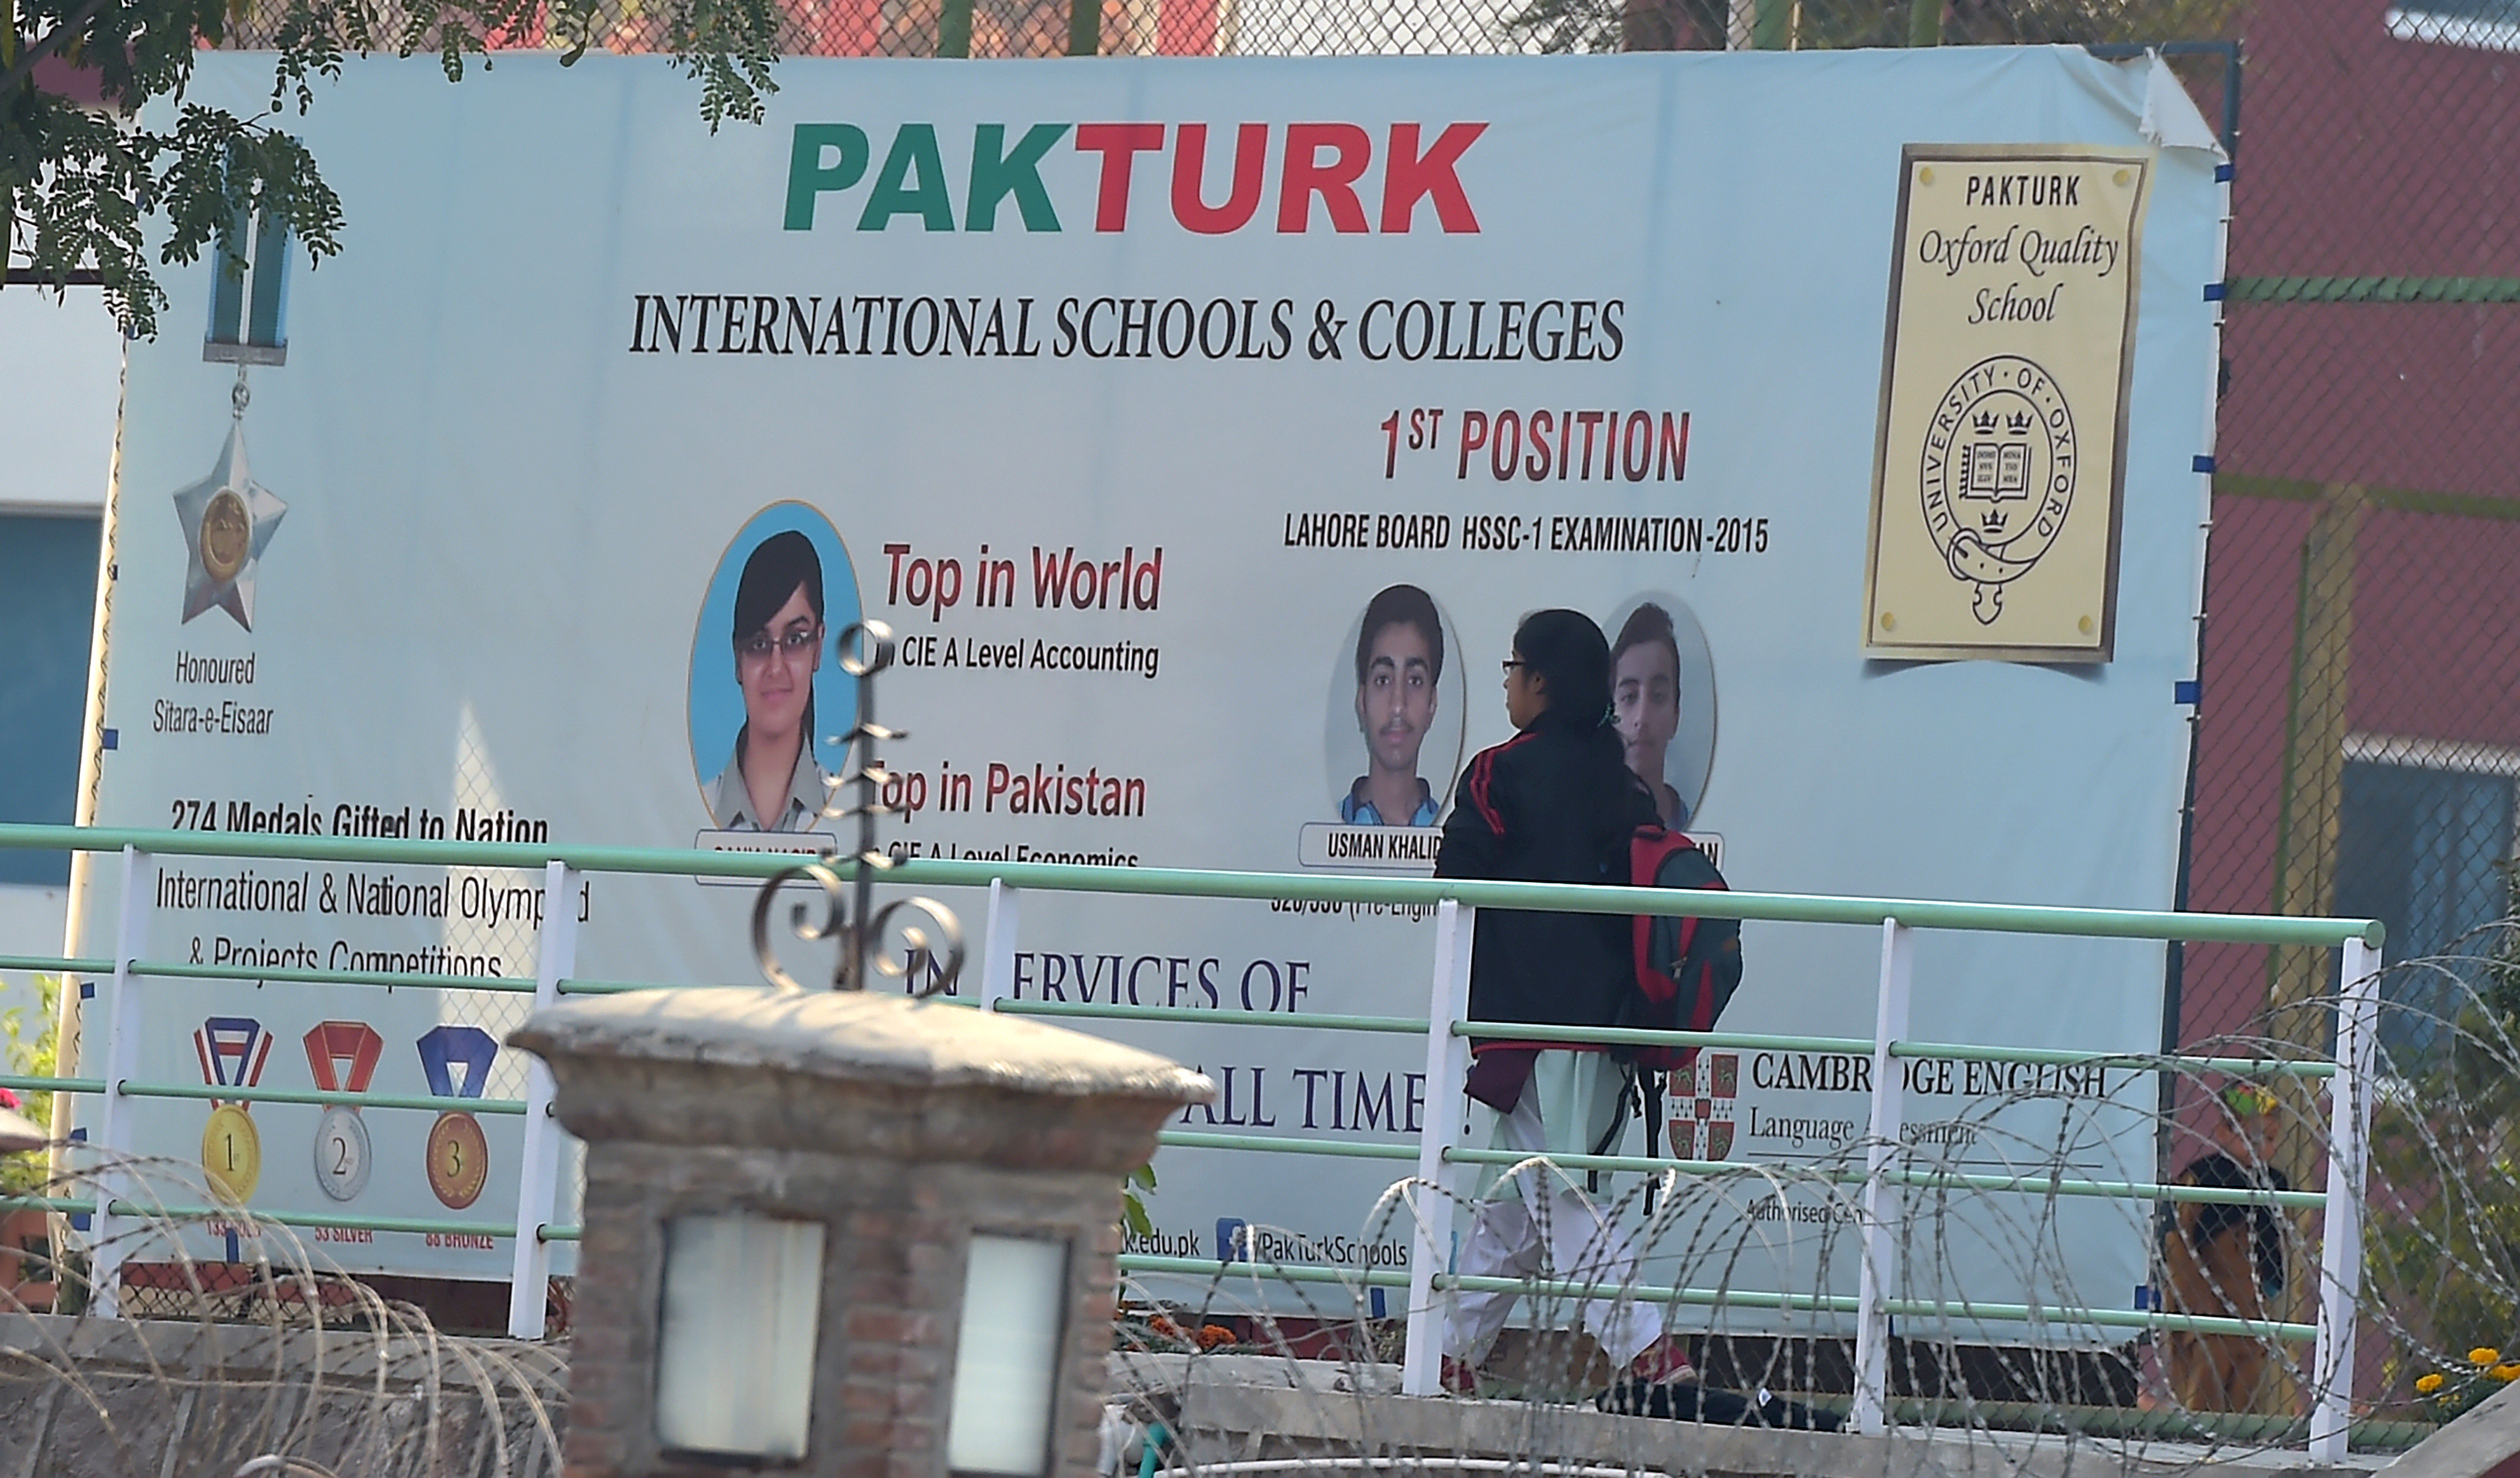 A Pakistani student walks at the private PakTurk International Schools and Colleges in Islamabad on November 16, 2016. Pakistan has ordered the deportation of 130 teachers affiliated with the alleged mastermind of an attempted coup in Turkey, officials said, as Turkish President Recep Tayyip Erdogan was to arrive for a visit.